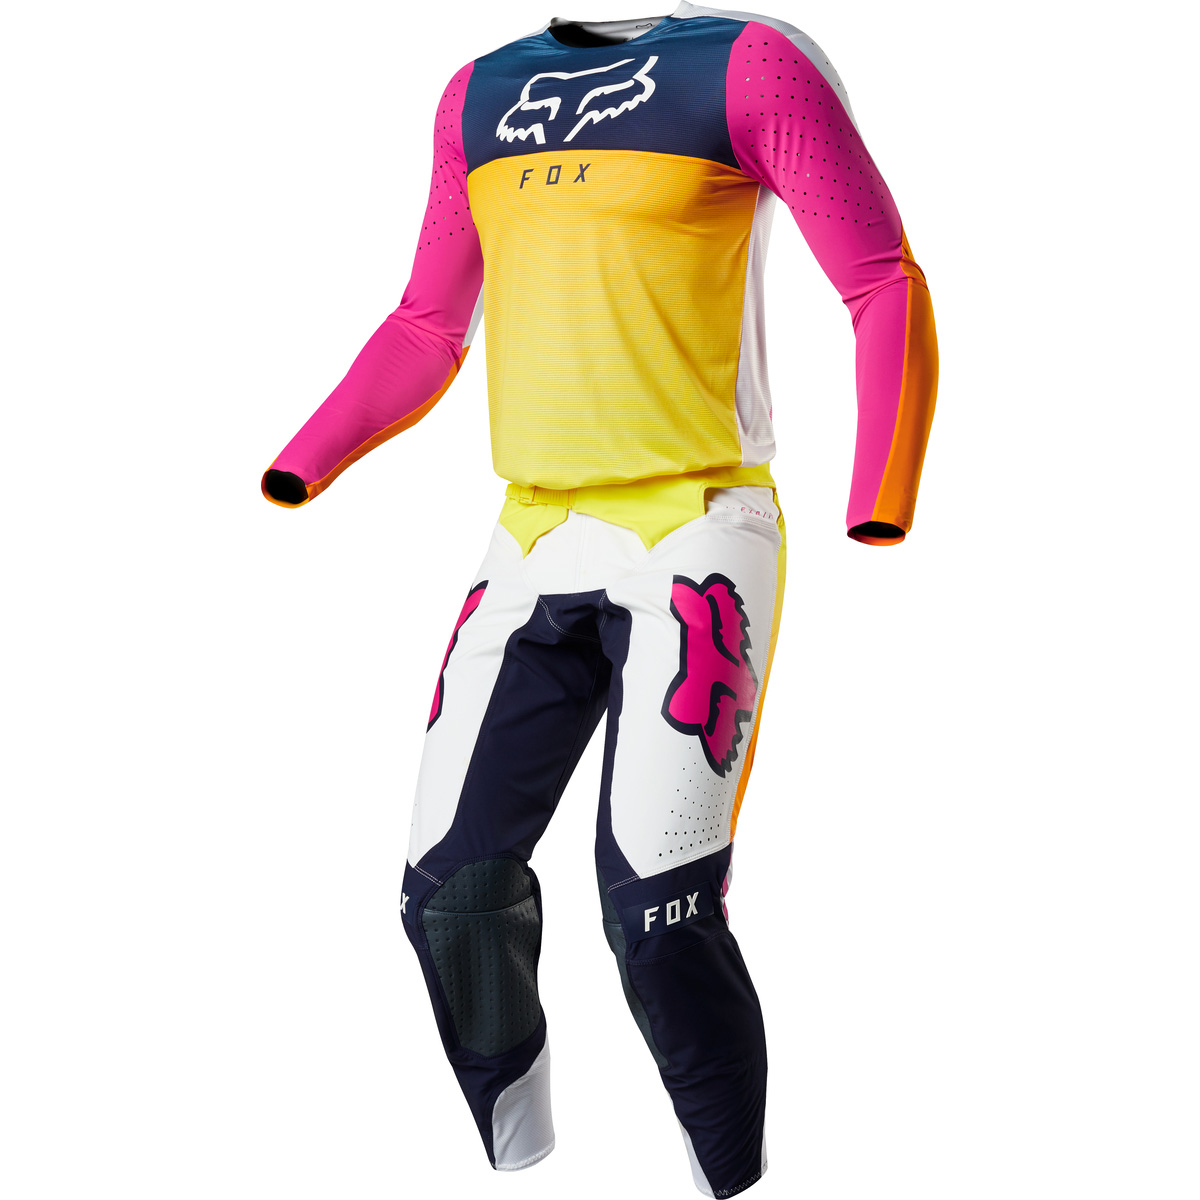 2019 Fox Racing Flexair Idol Limited Edition Anaheim 1 Gear Kit Combo equipement outfit pak kostuum motocross tenue